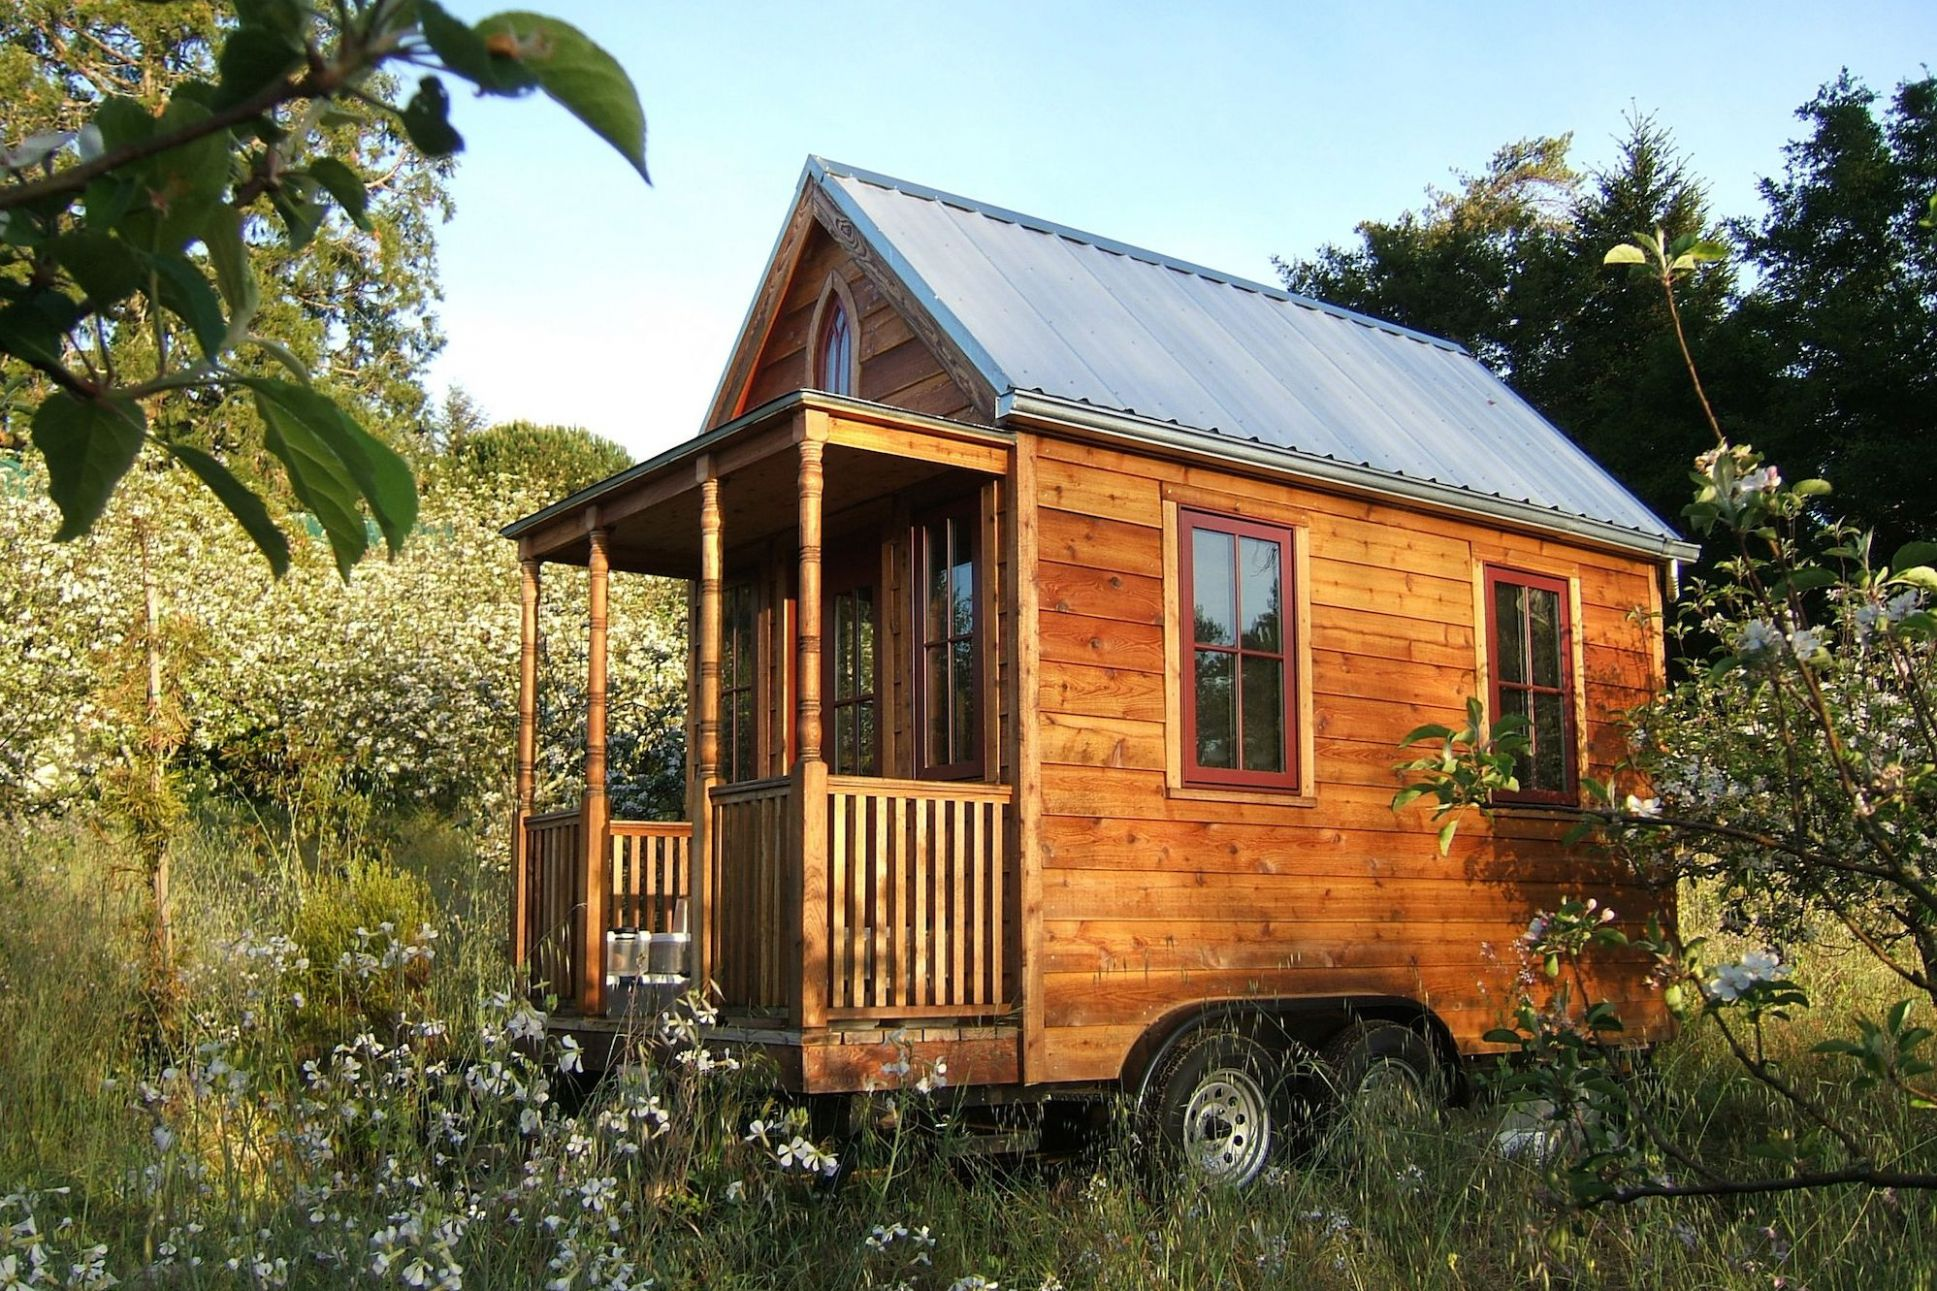 How Much Does it Cost to Build or Buy a Tiny House? - tiny house cost